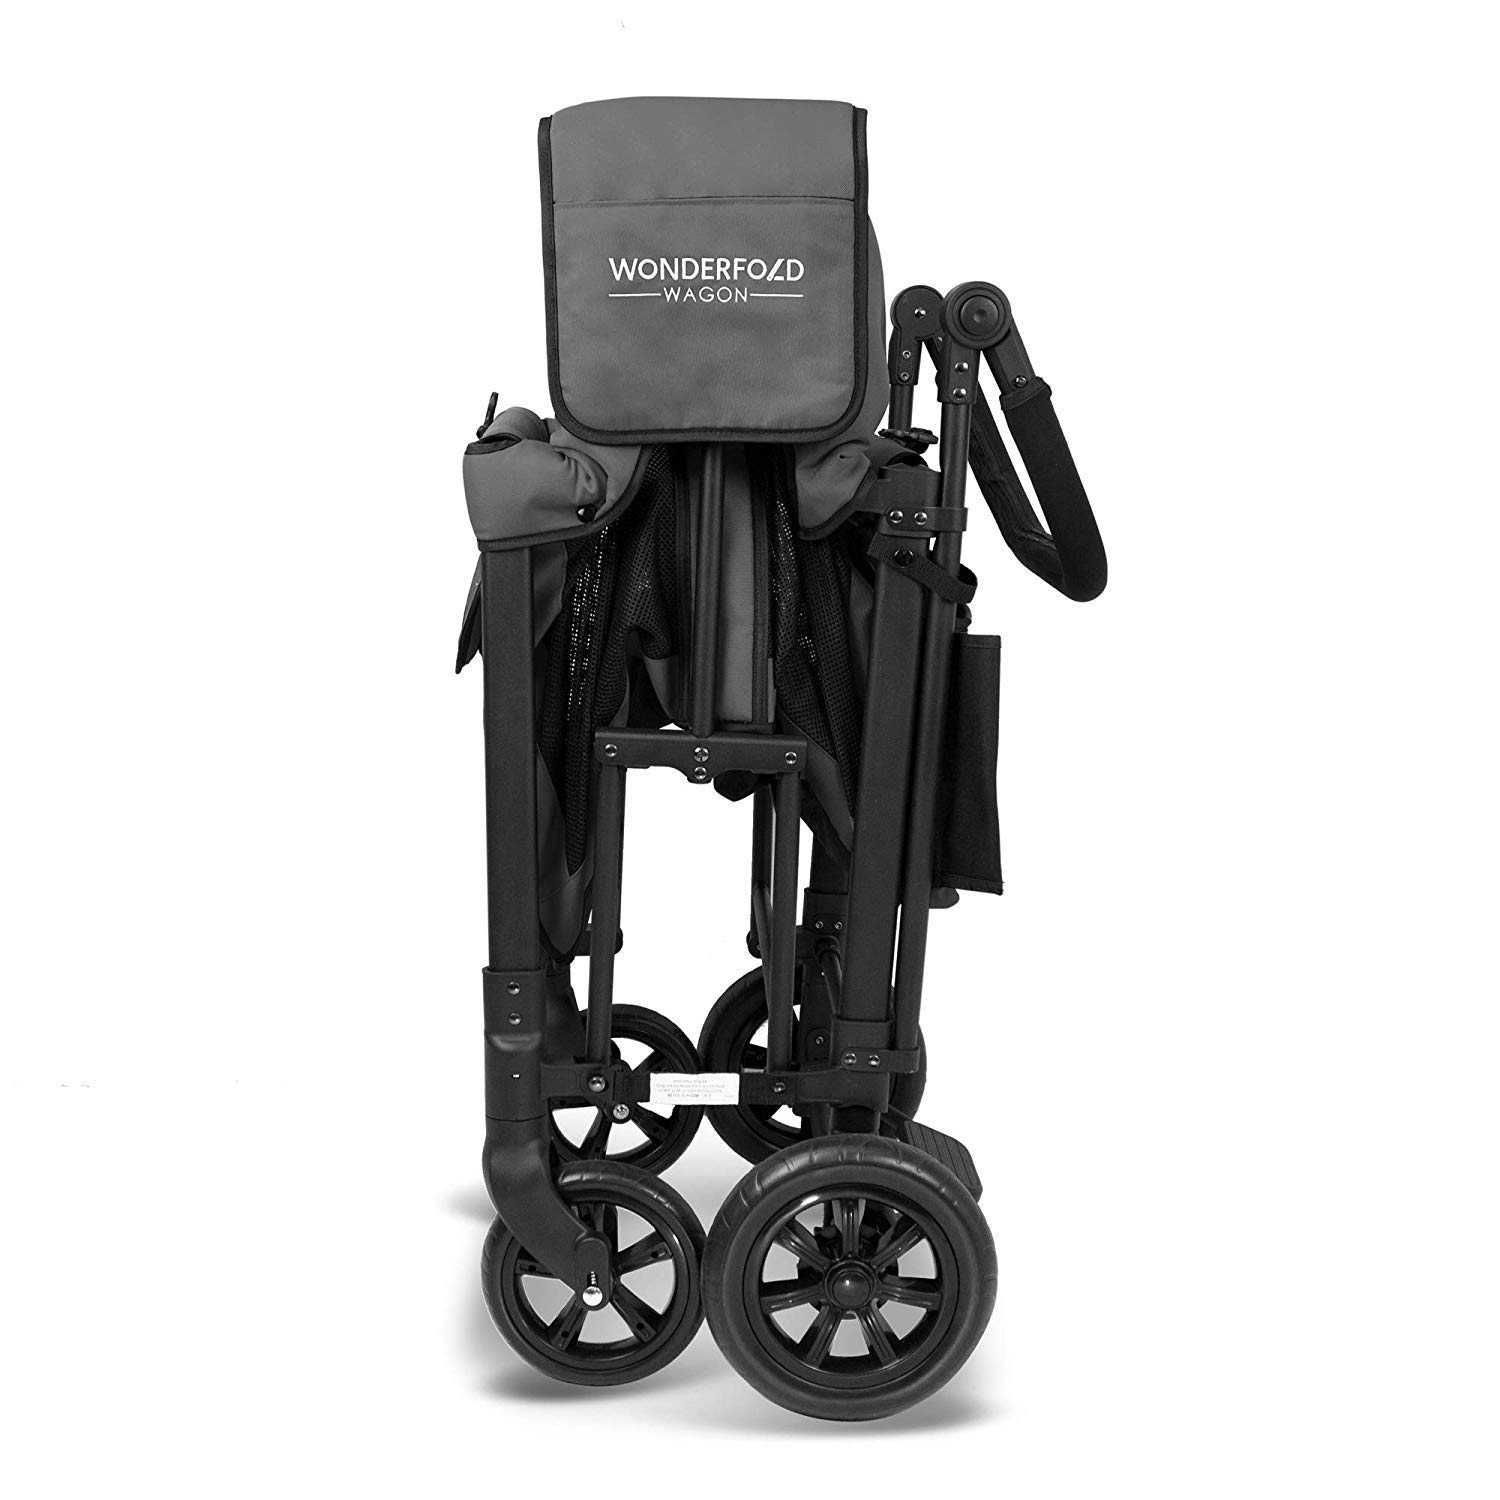 Adjustable Canopy /& Removable Chair Seat Up to 2 Toddlers with Bonus Baby GERA XPO Stroller Hook Included!!! WonderFold W2 Multi-Function Push 2 Passenger Double Folding Stroller Charcoal Gray